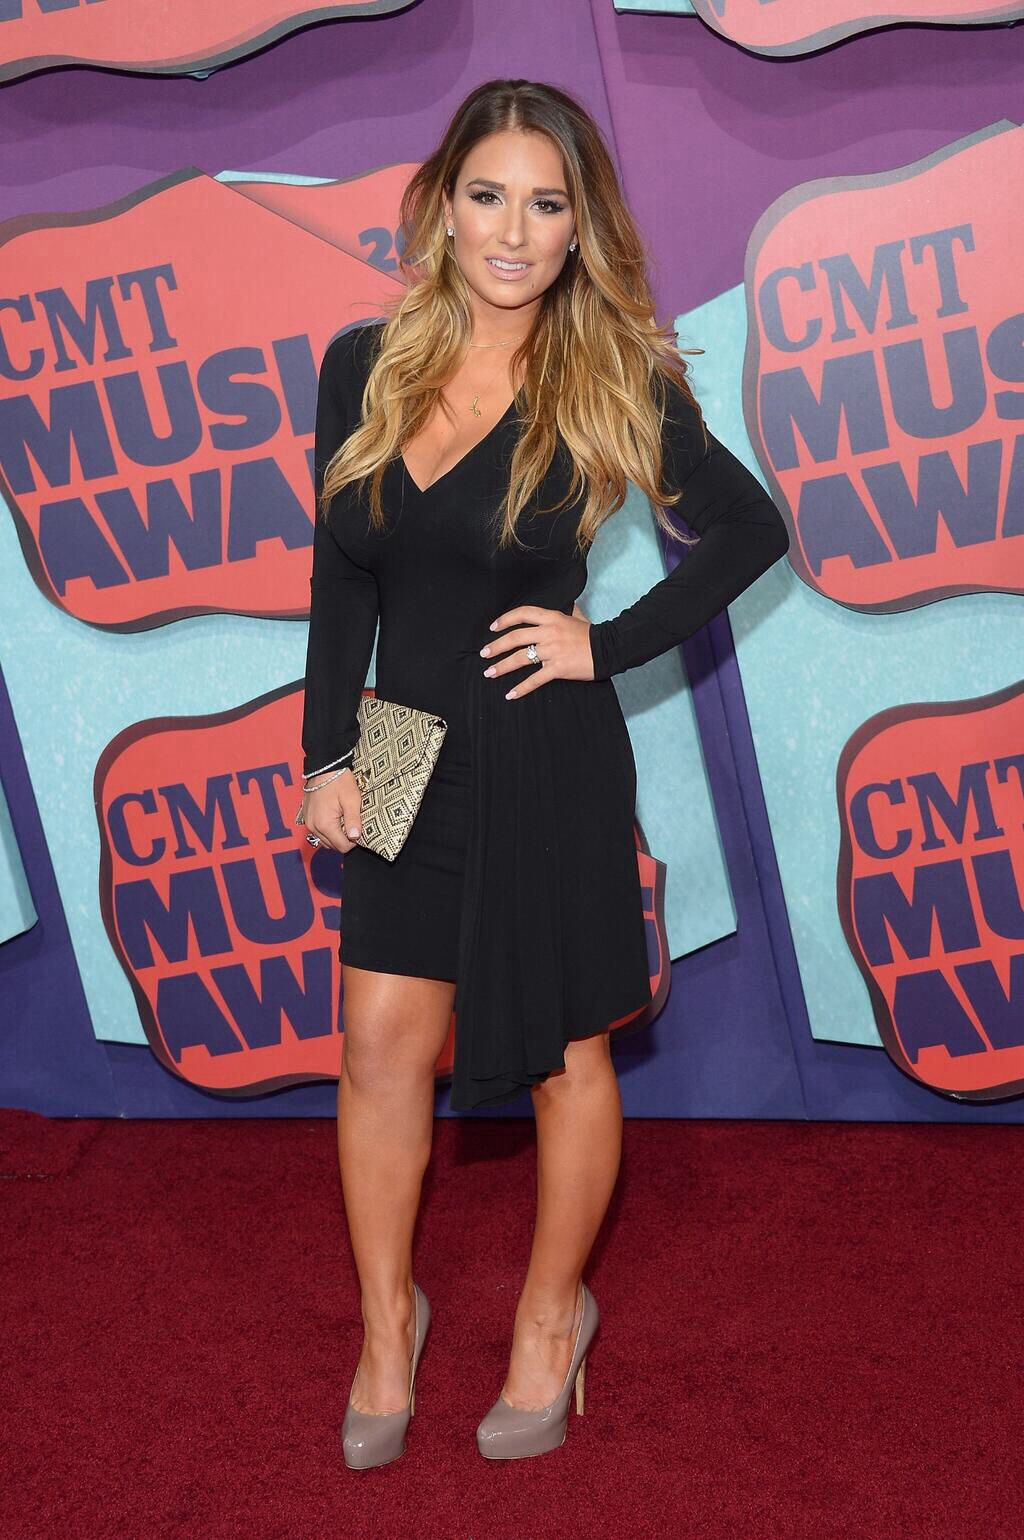 Jessica James Decker looked amazing at the CMT Music Awards!